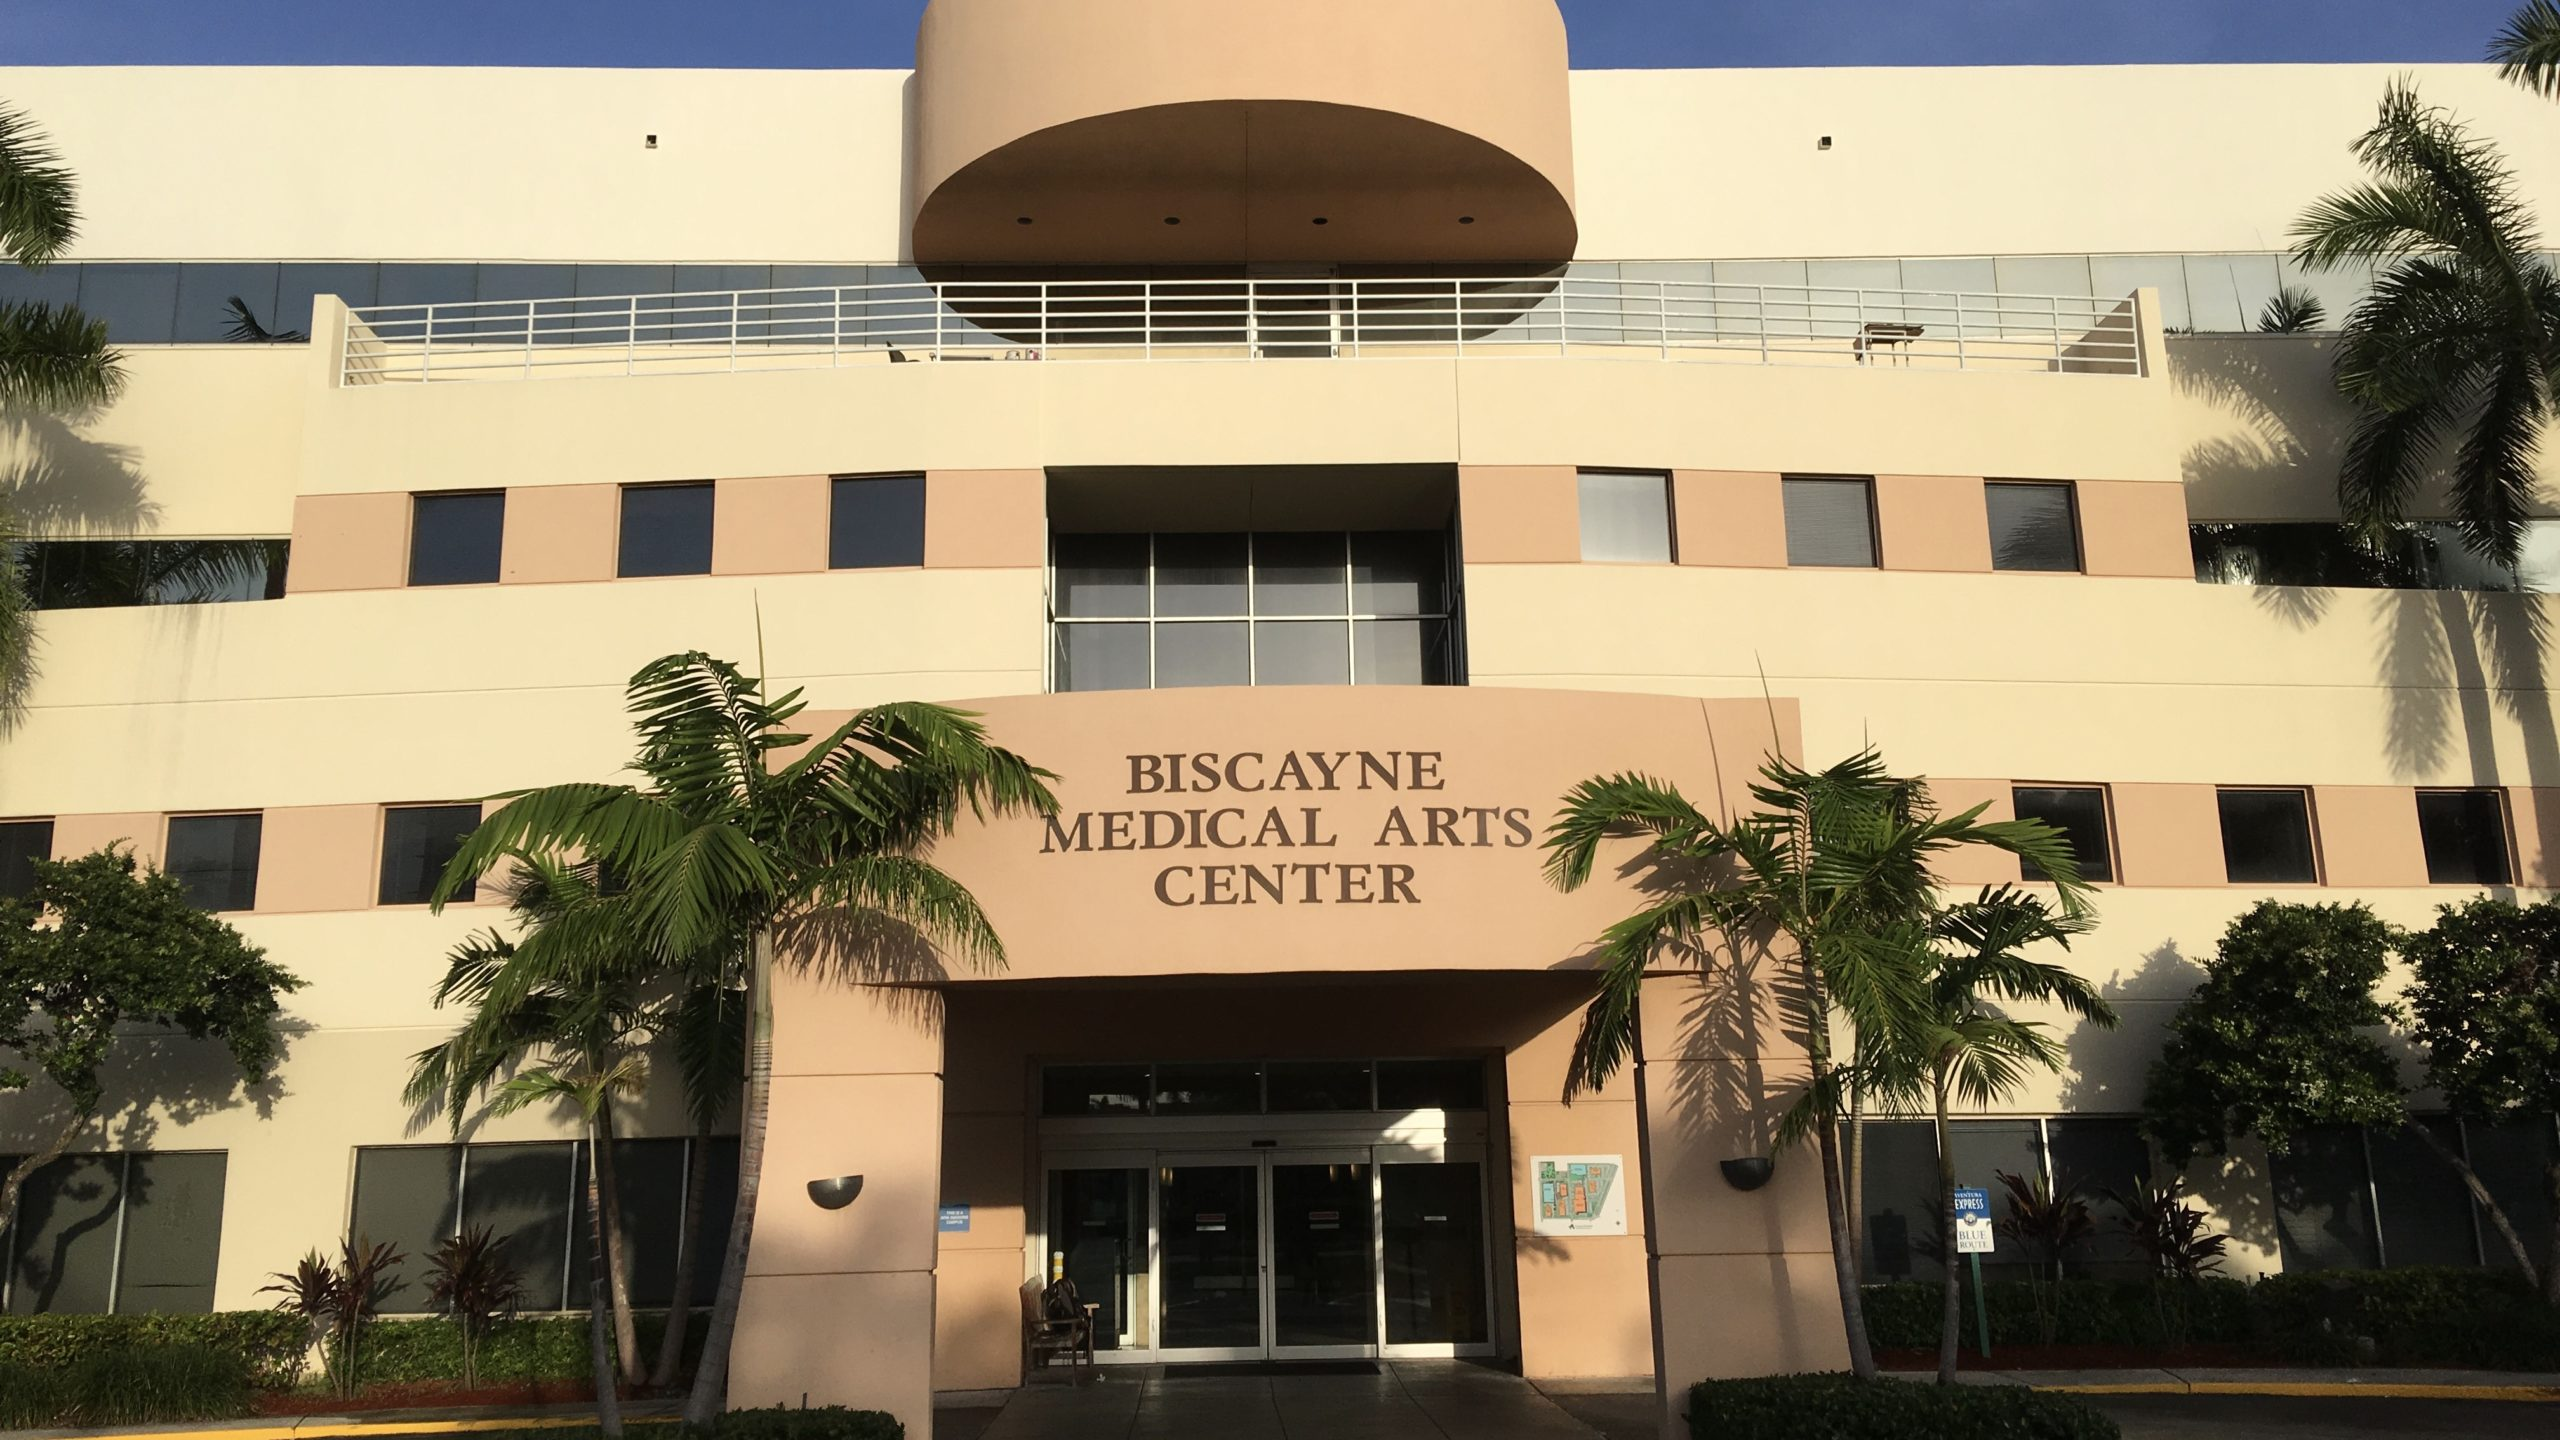 Biscayne Medical Arts Center